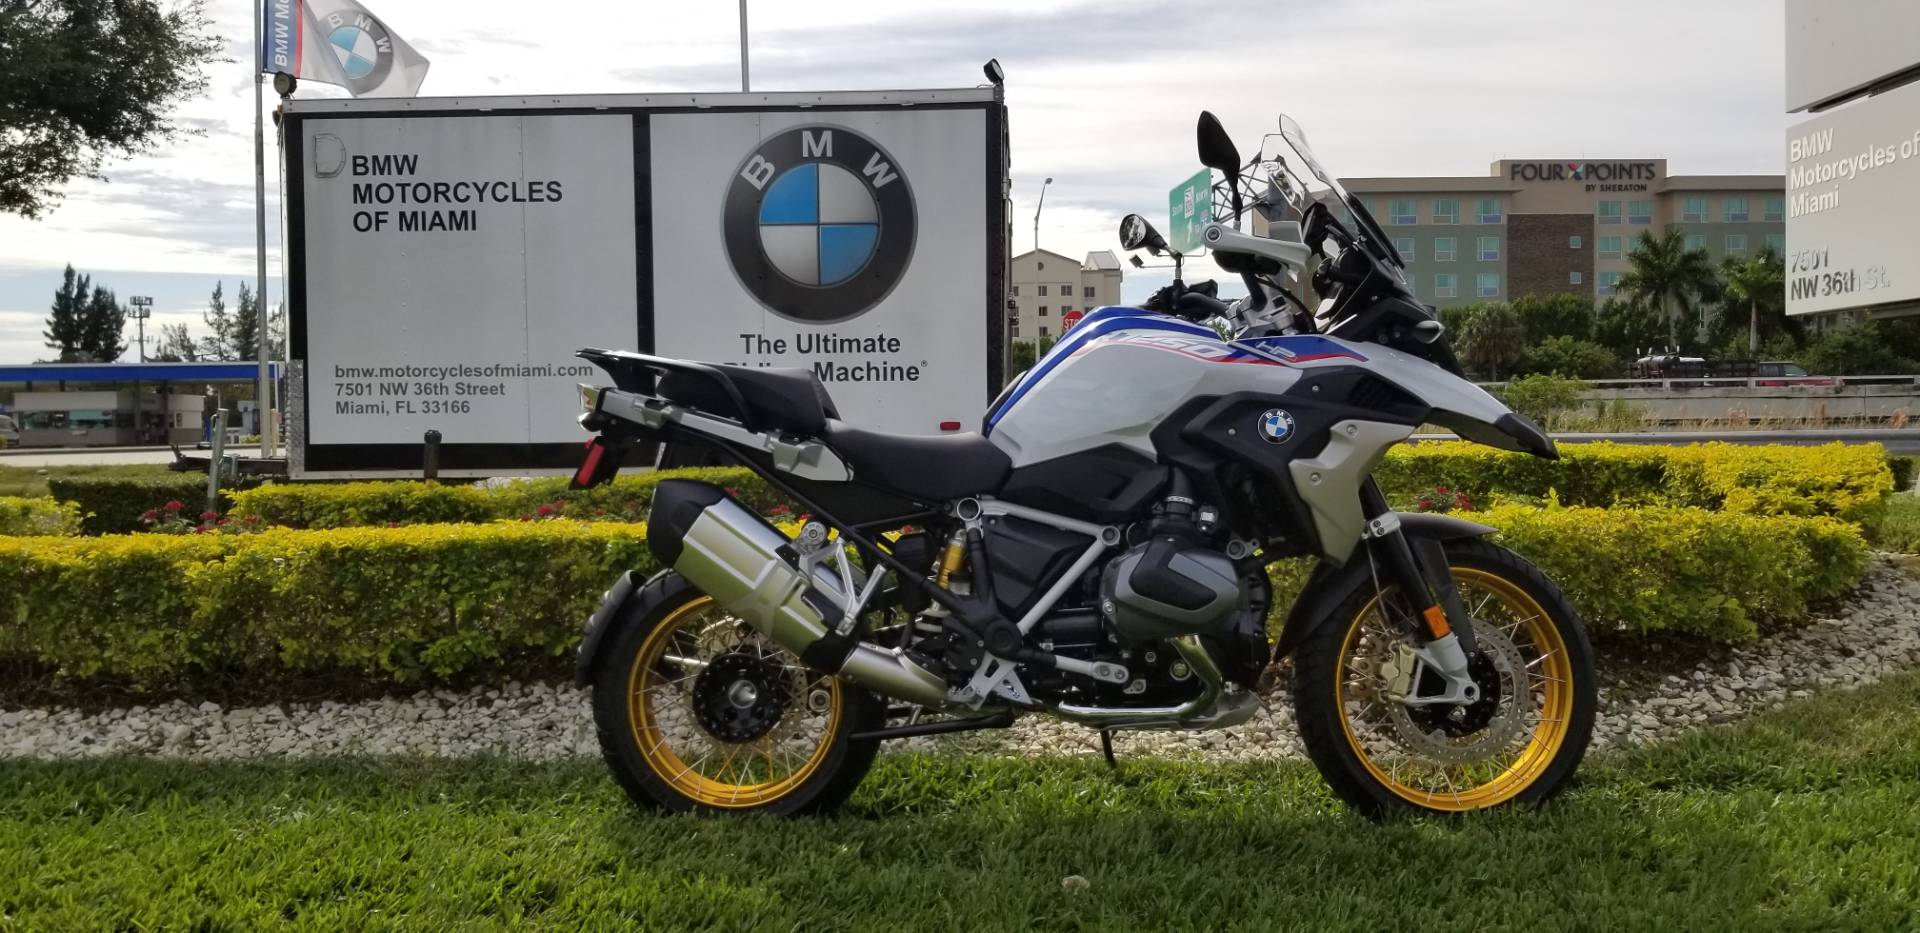 New 2019 BMW R 1250 GS for sale, New BMW for sale R 1250GS, New BMW Motorcycle R1250GS for sale, new BMW 1250GS, R1250GS, GS. BMW Motorcycles of Miami, Motorcycles of Miami, Motorcycles Miami, New Motorcycles, Used Motorcycles, pre-owned. #BMWMotorcyclesOfMiami #MotorcyclesOfMiami. - Photo 30